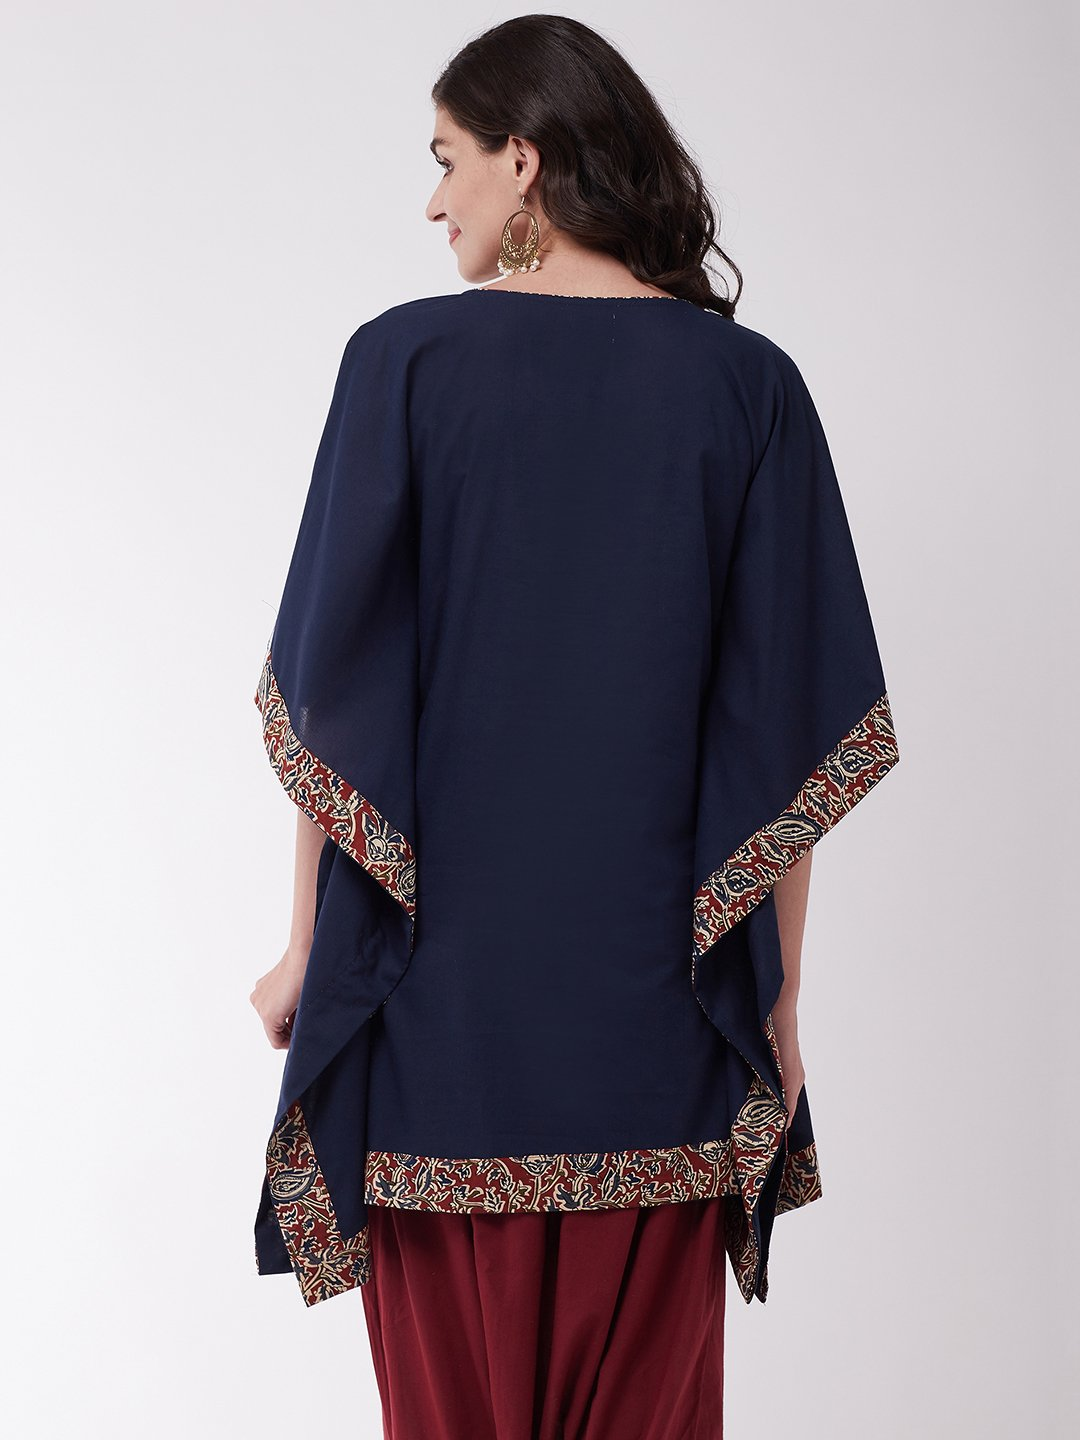 Navy Blue Kalamkari Border Kaftan Tunic